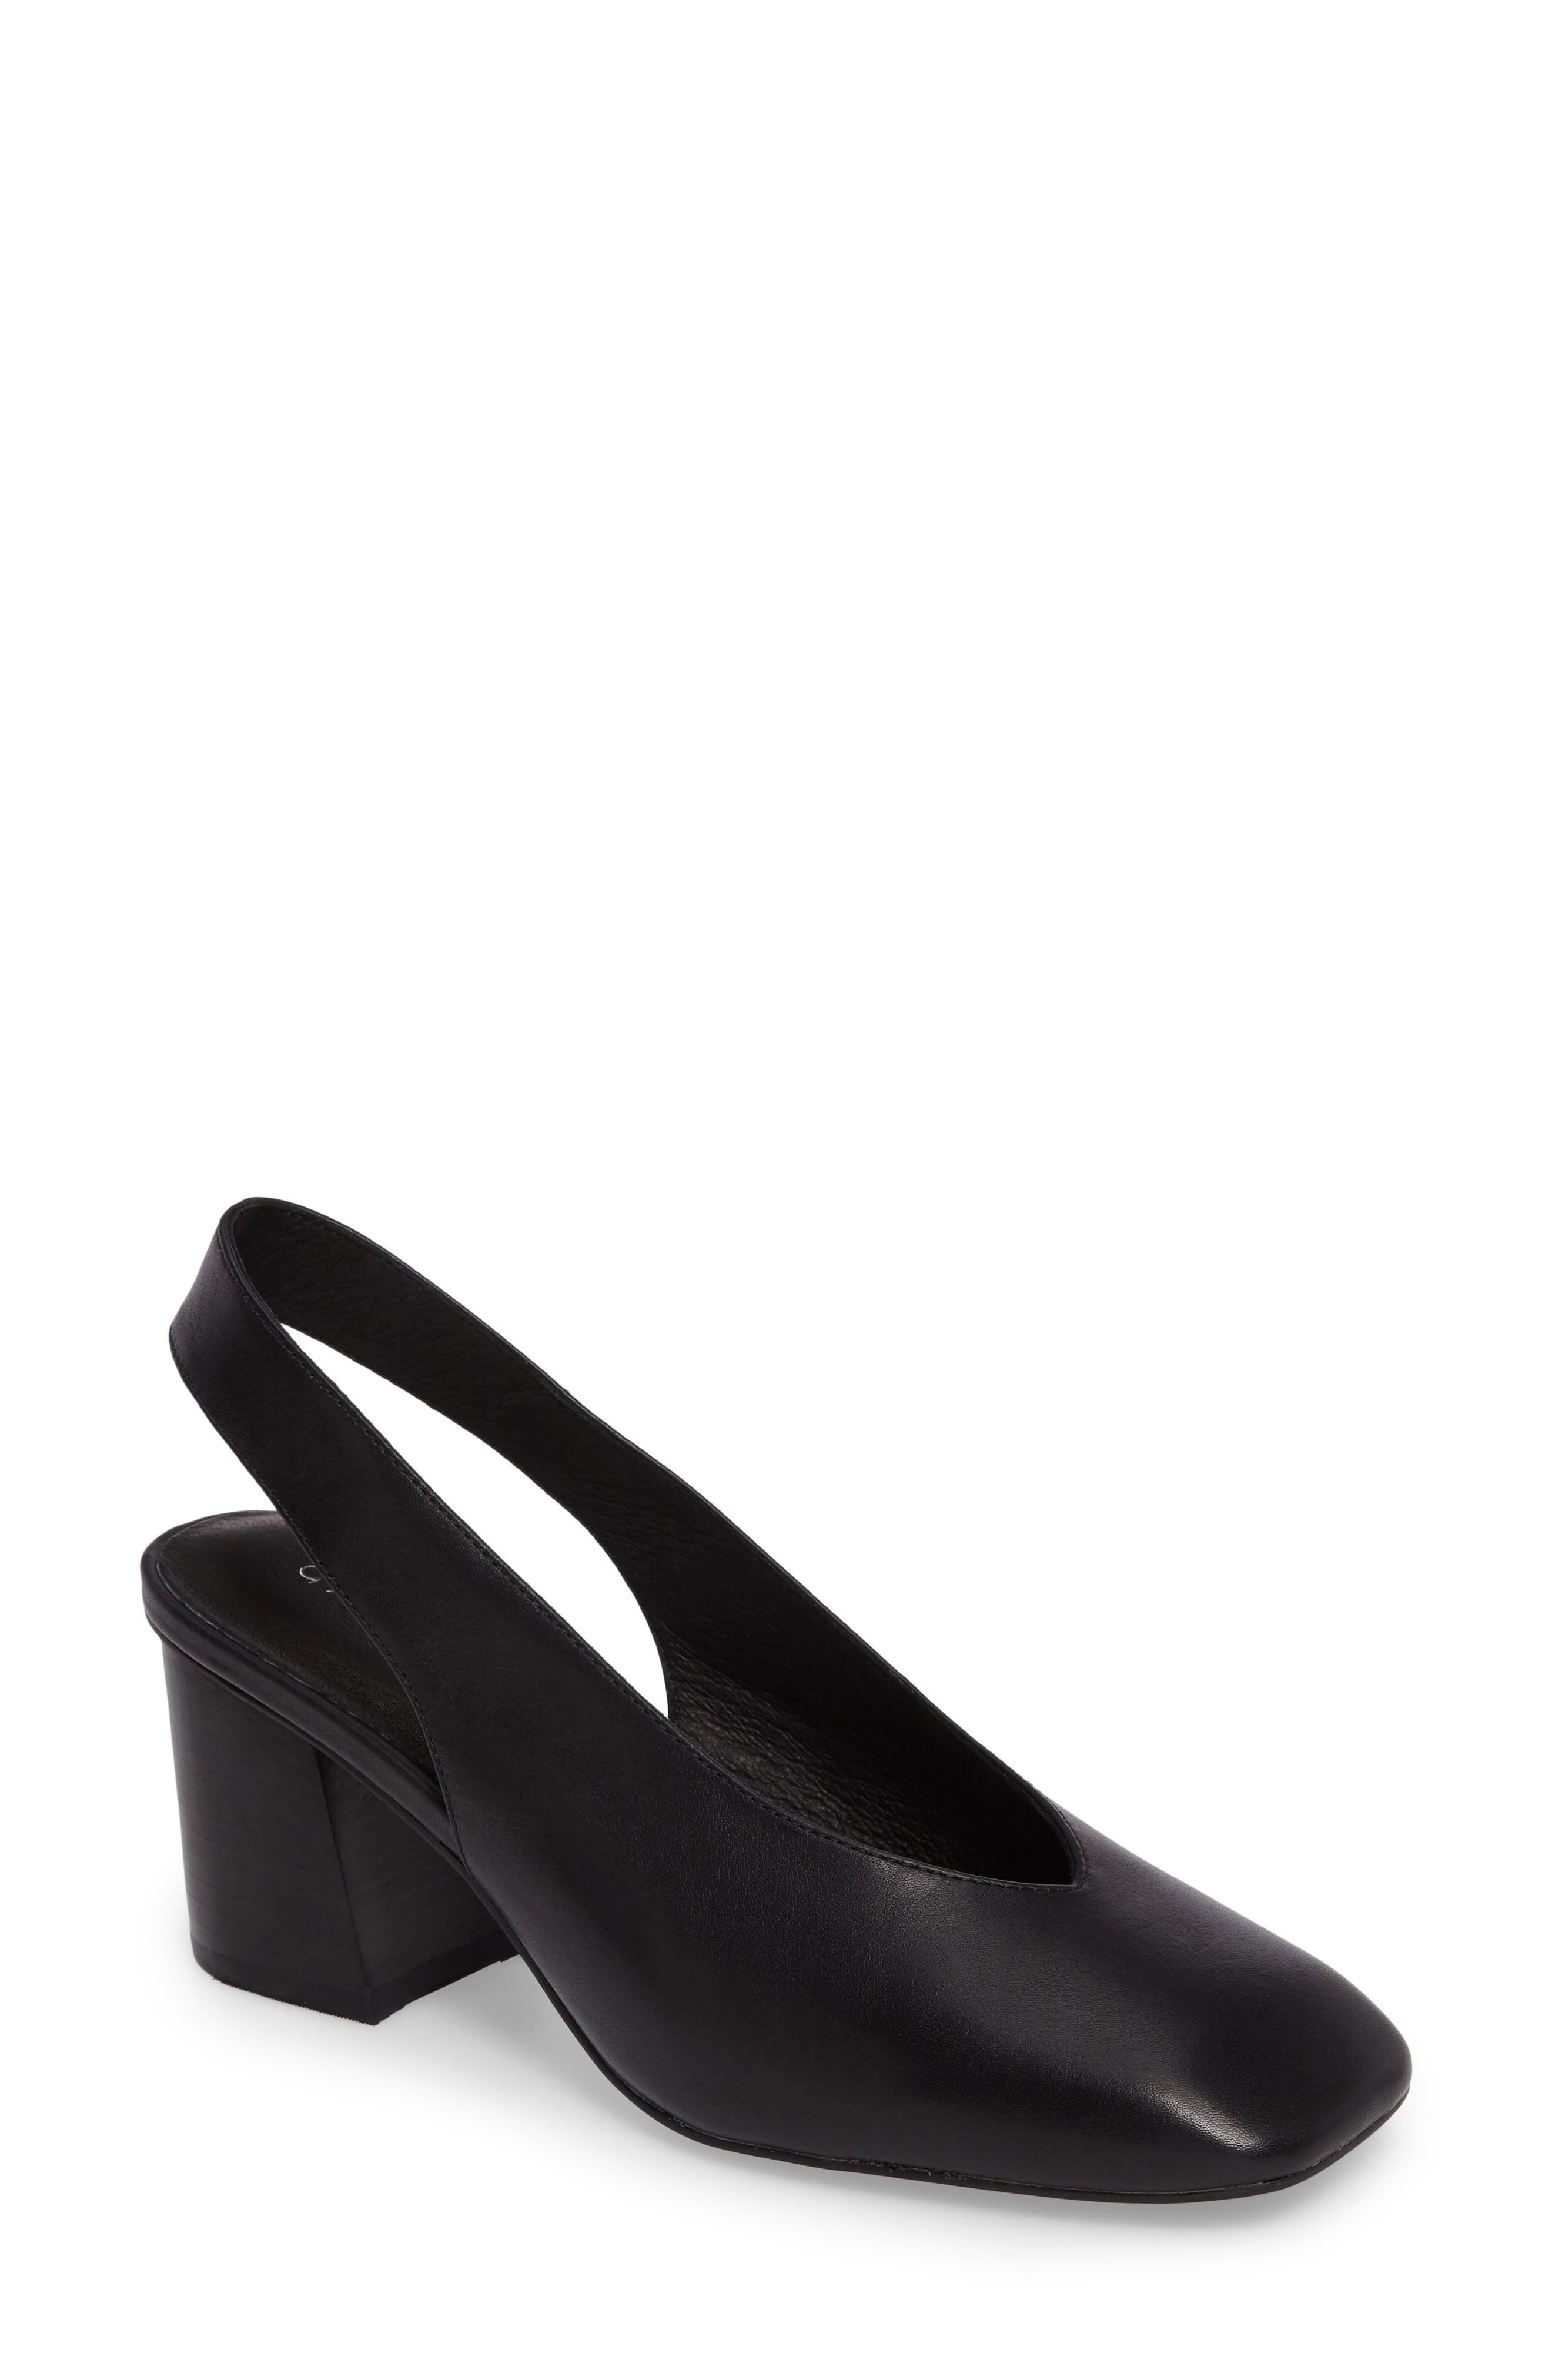 Sydney Square-Toe Slingback Pump,                         Main,                         color, Black